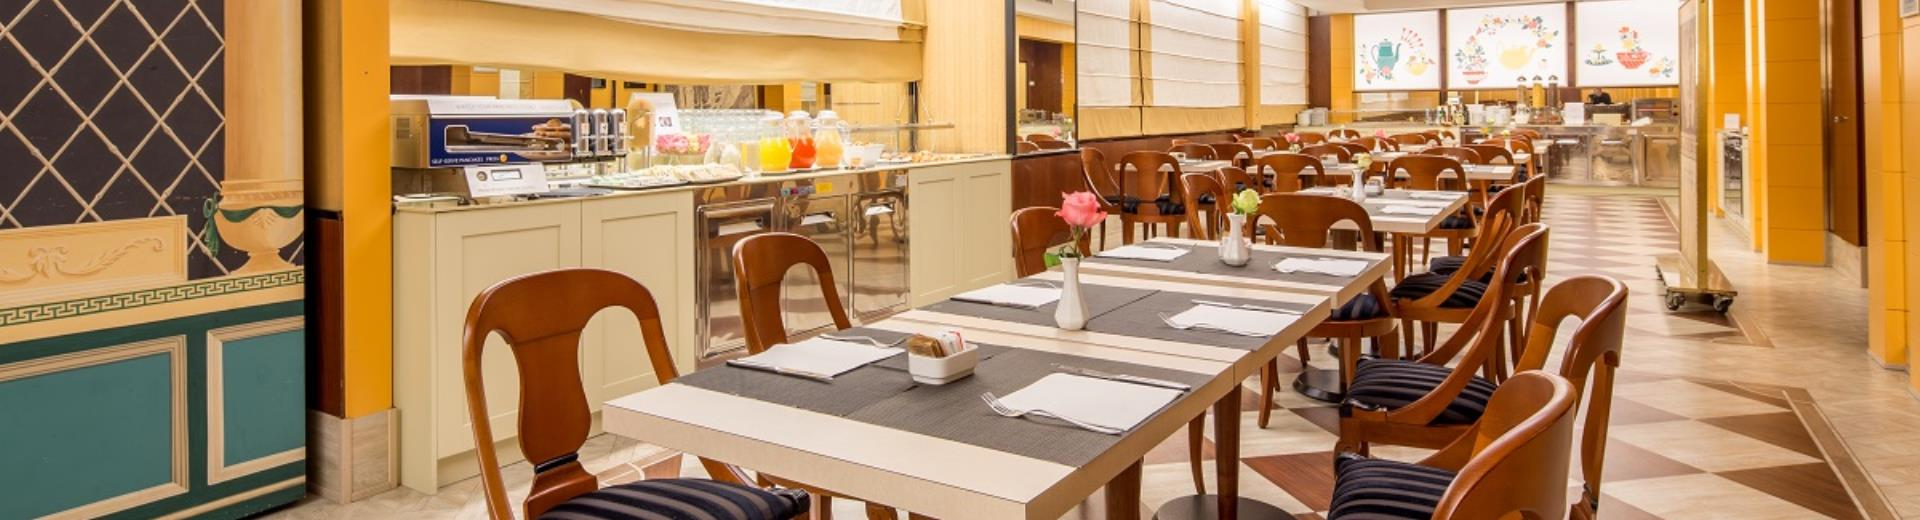 If you book through our website, breakfast costs only one euro, choose BW Antares Hotel Concorde!